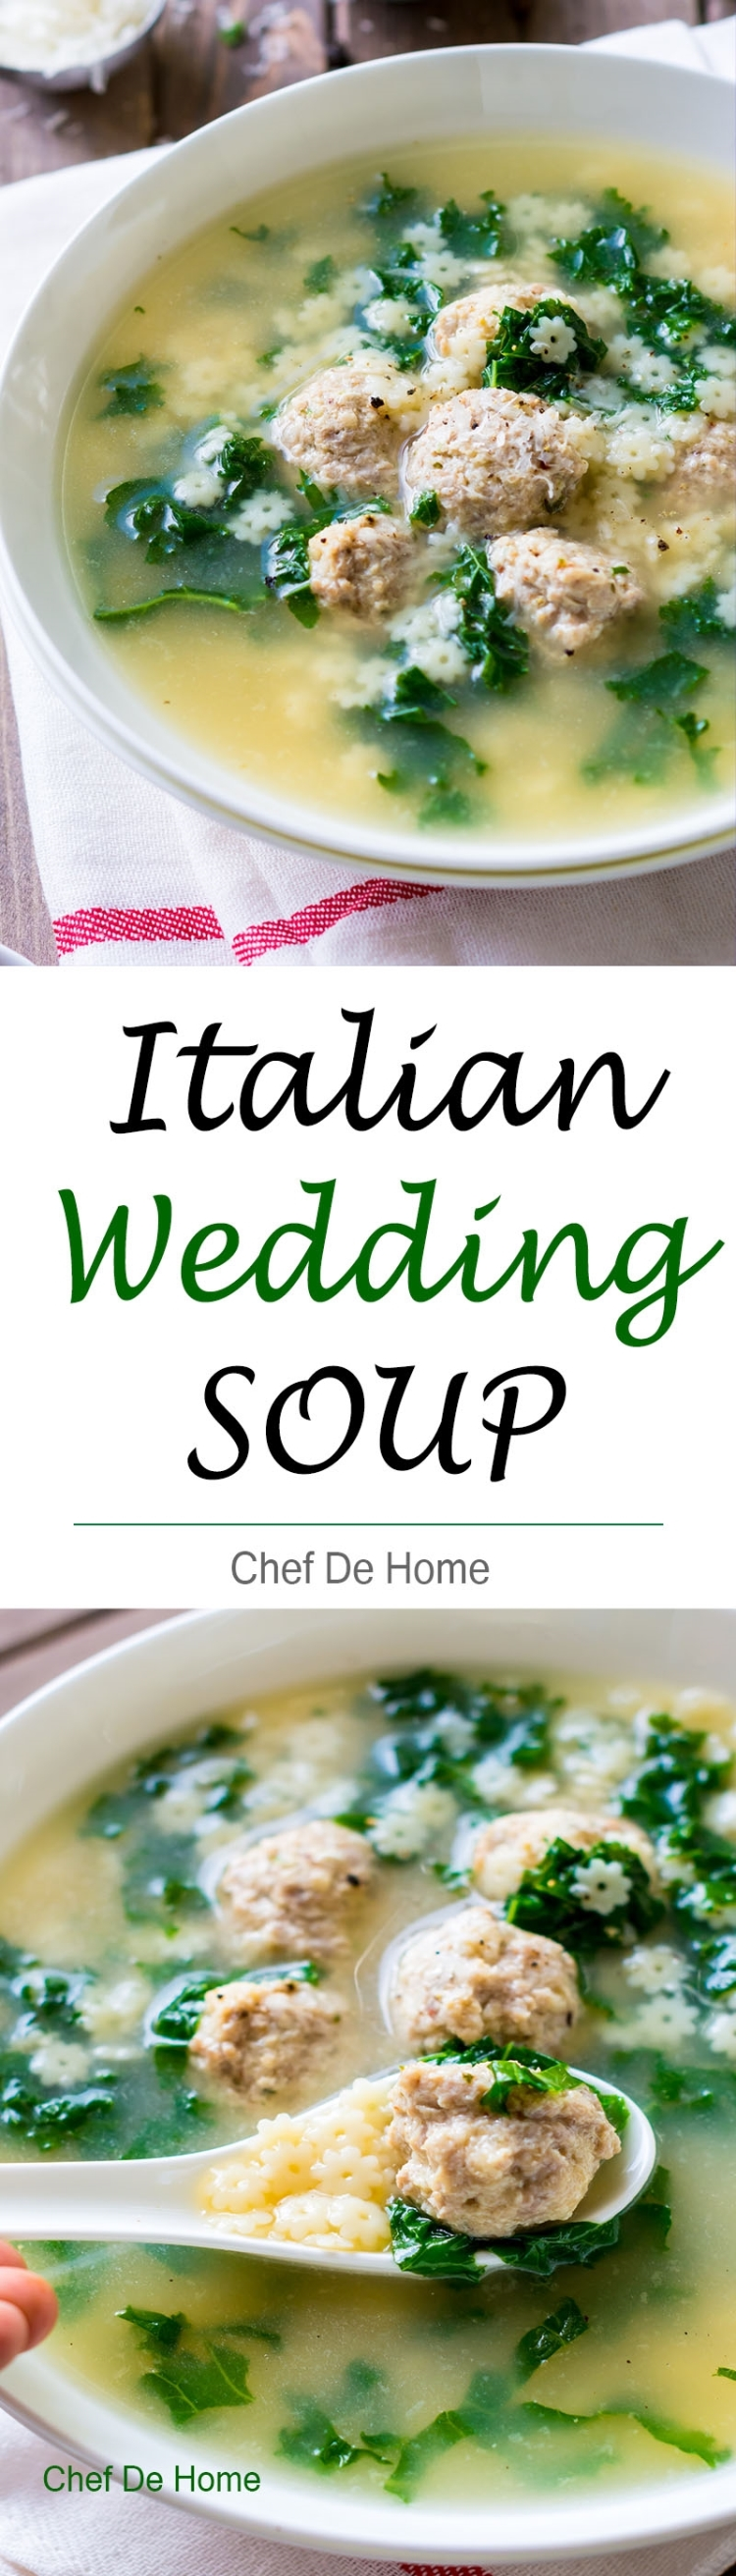 One pot Italian wedding soup with pasta meatballs and kale for comforting winter dinner | chefdehome.com